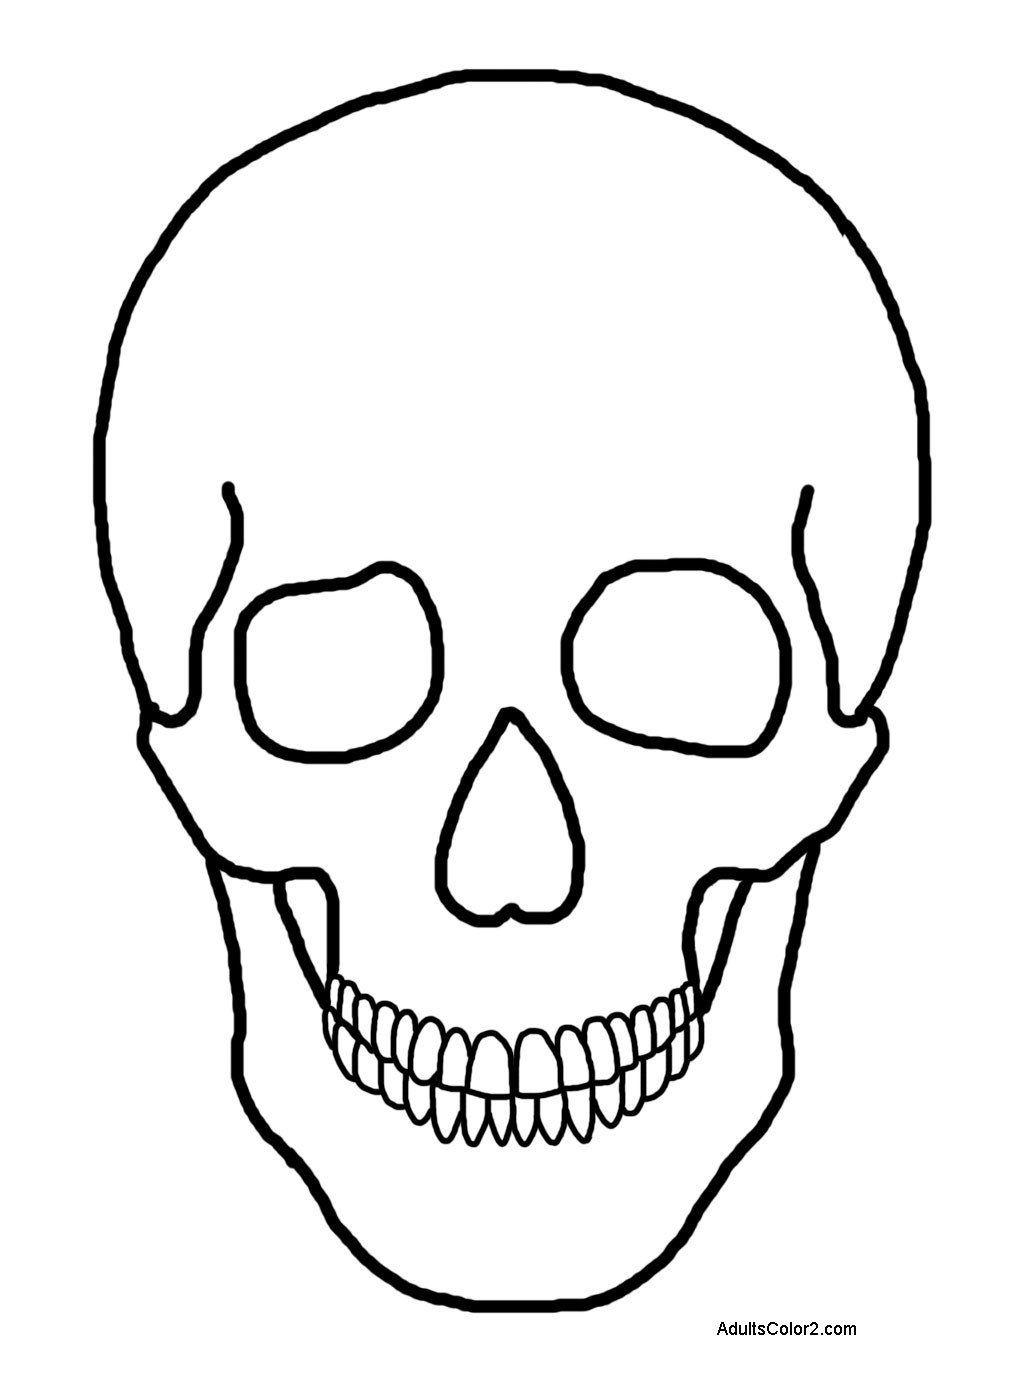 Skeleton Head Coloring Pages Merry Halloween Coloring Pages In 2020 Skull Coloring Pages Coloring Pages Animal Coloring Pages